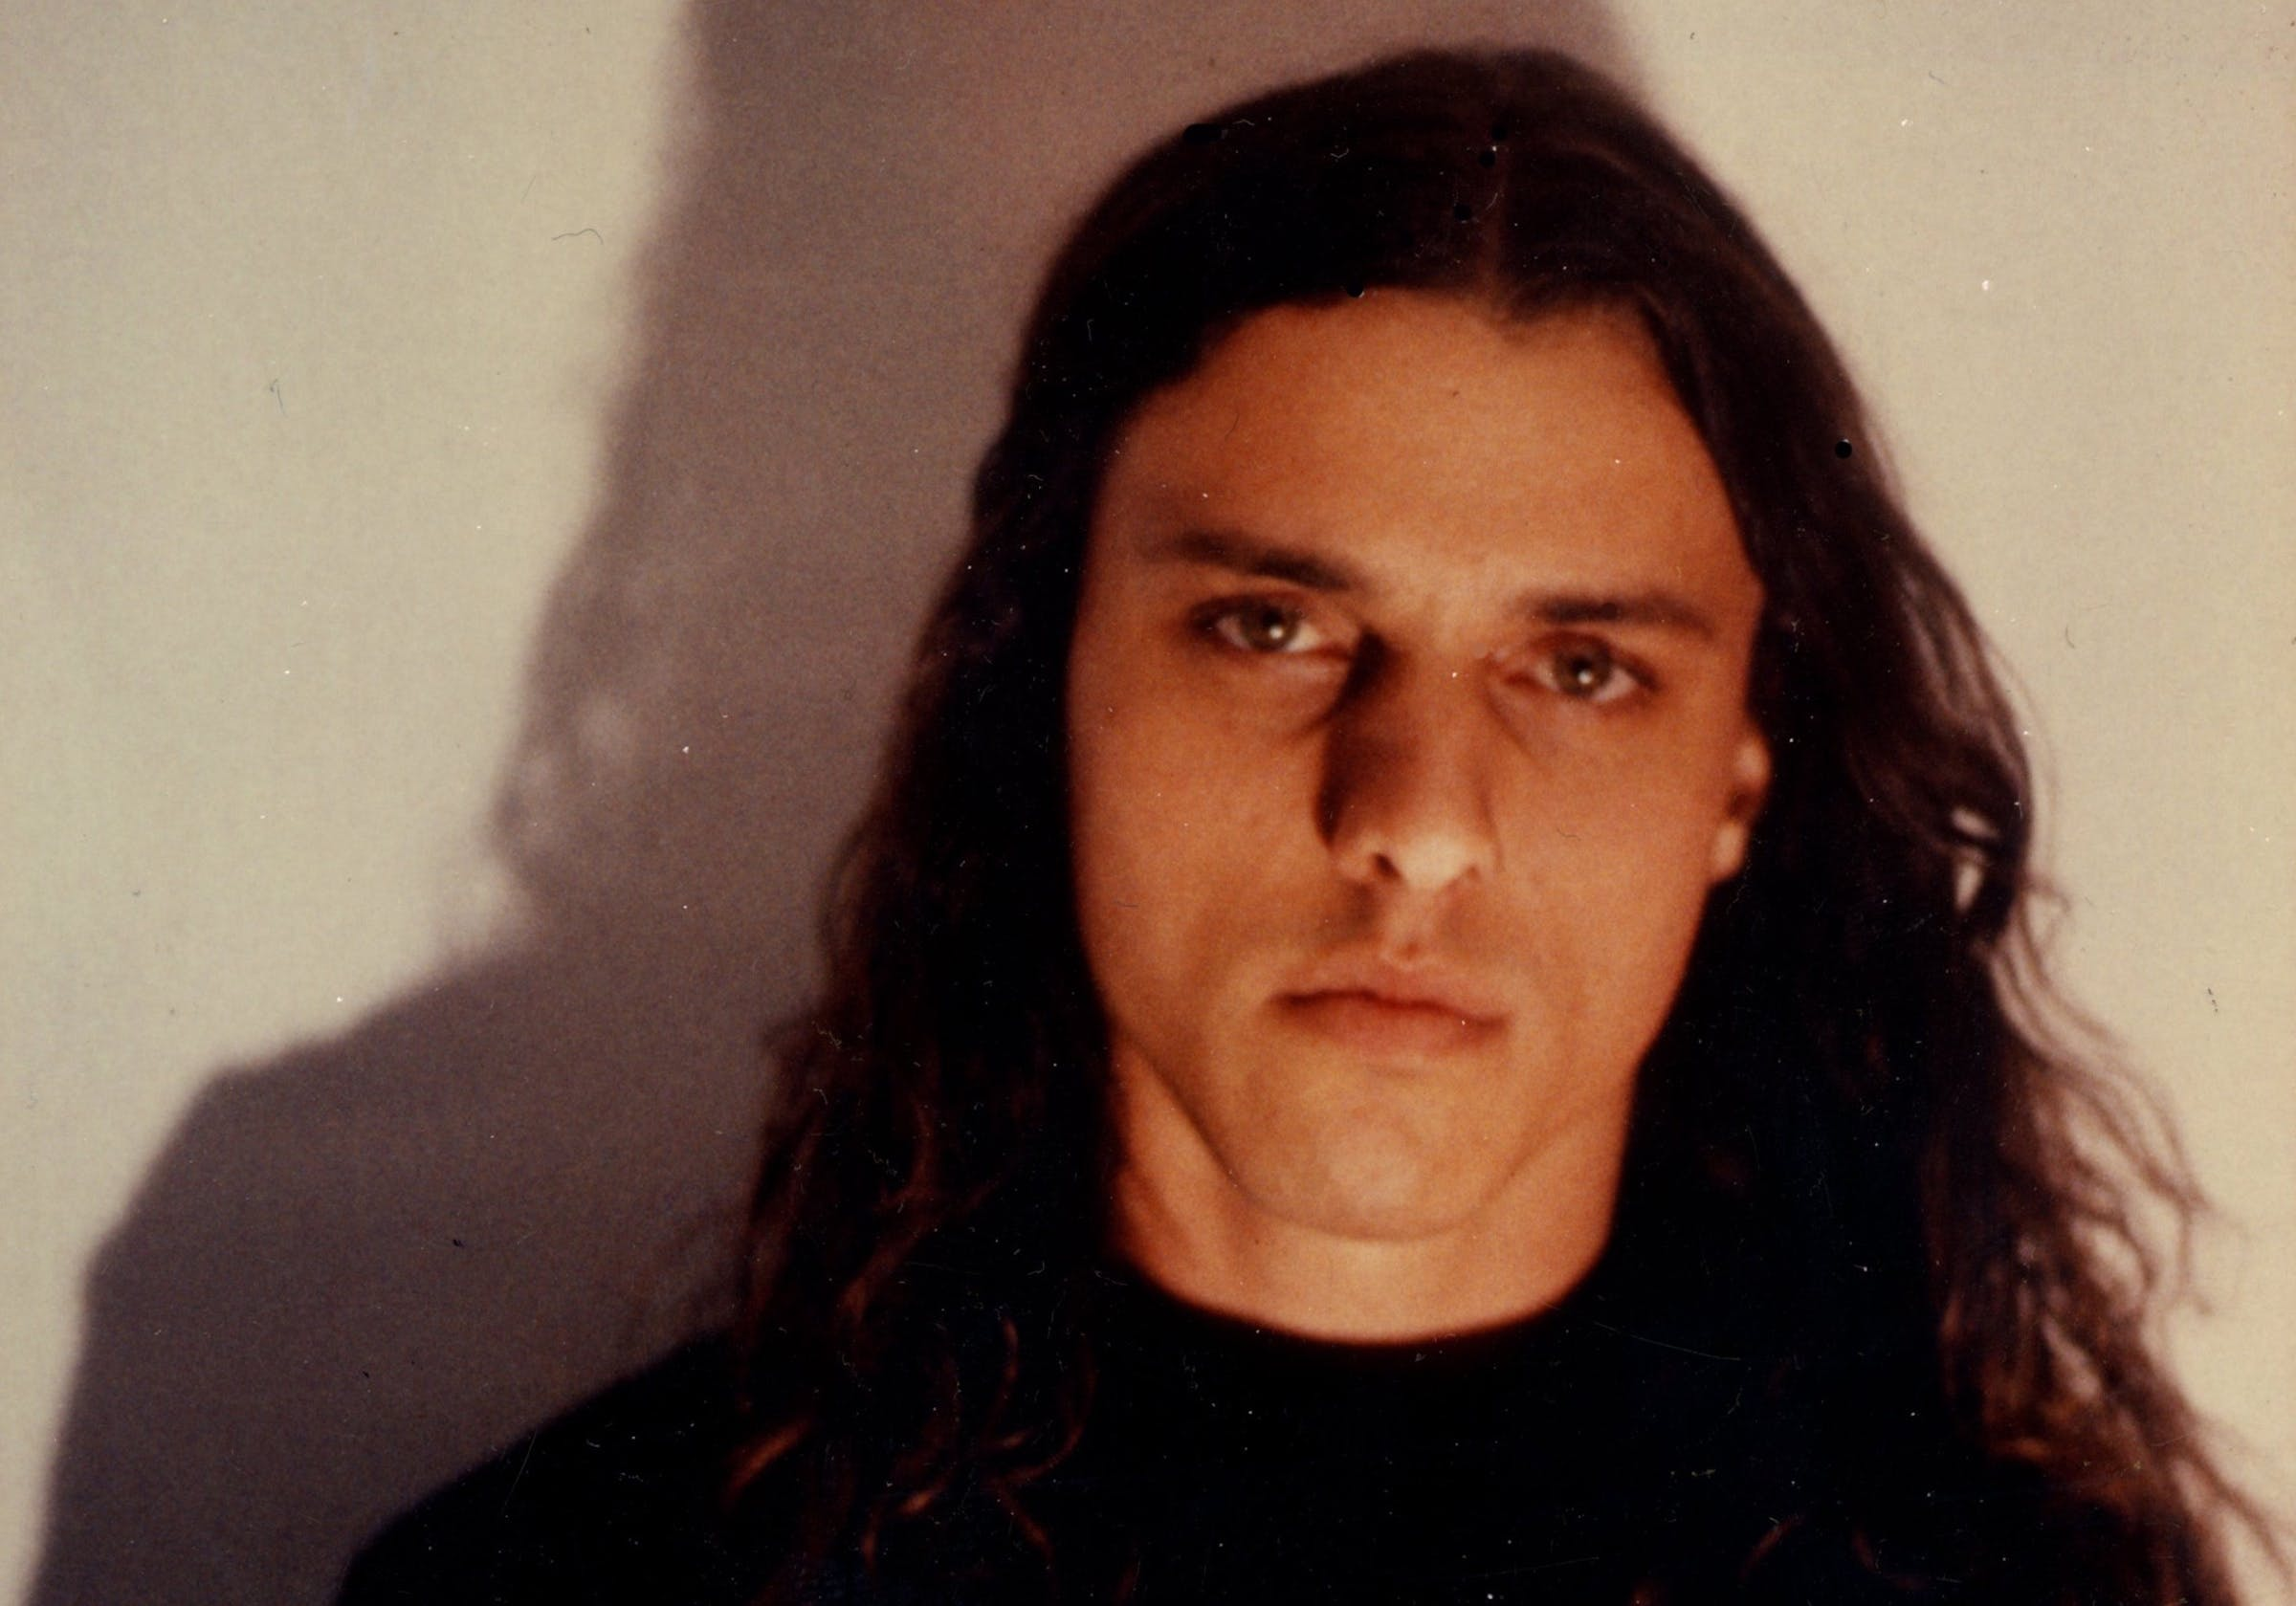 Life After Death: The Romantic Legacy Of Chuck Schuldiner